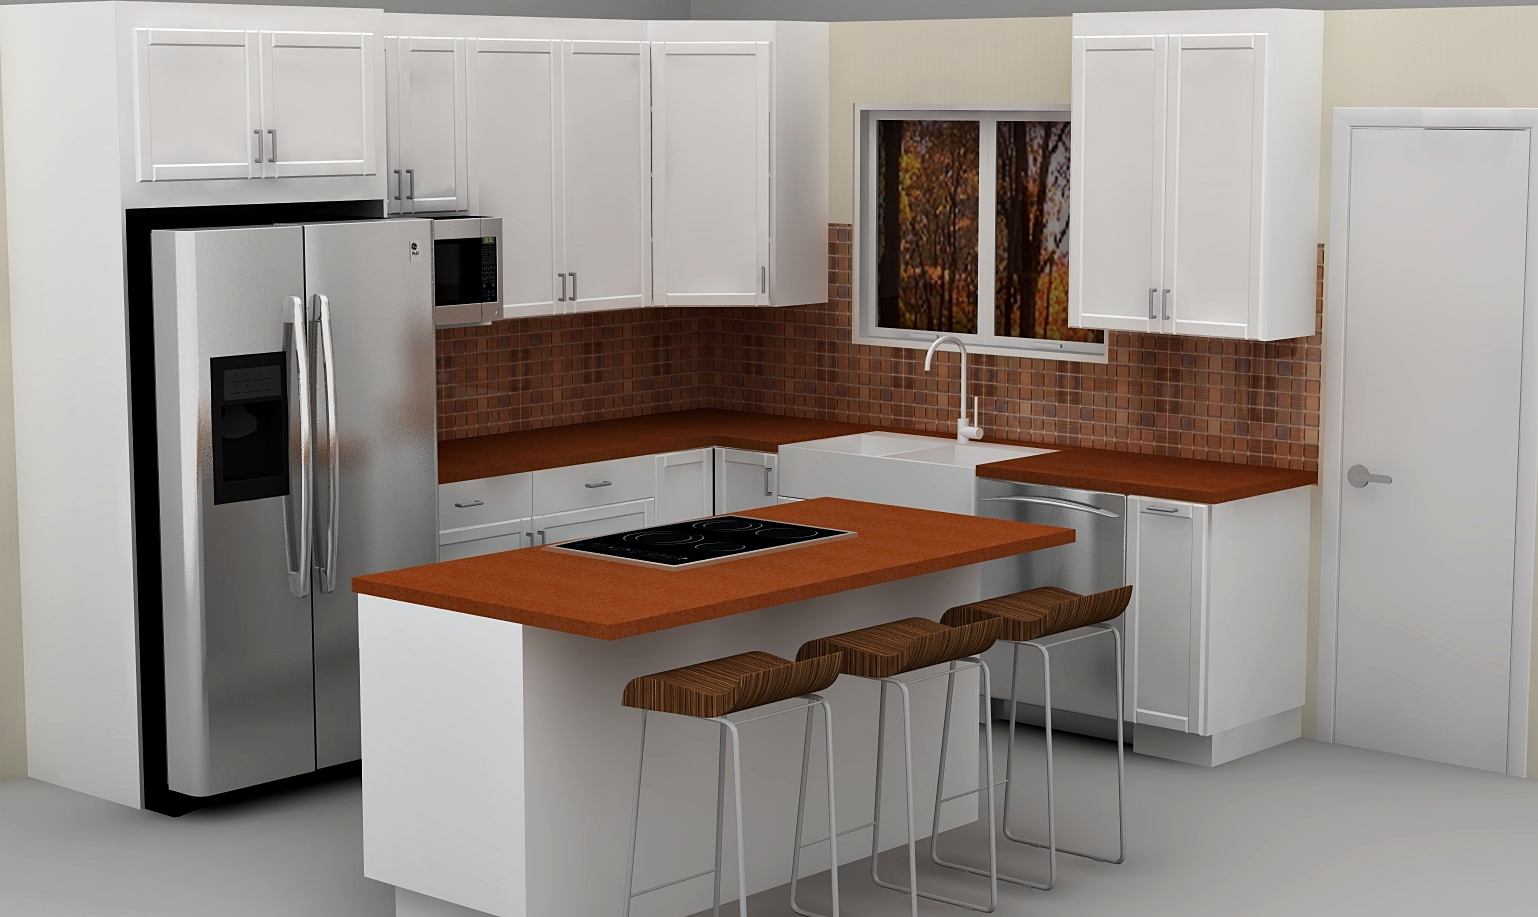 Brighter Kitchen Design Application from IKEA Online